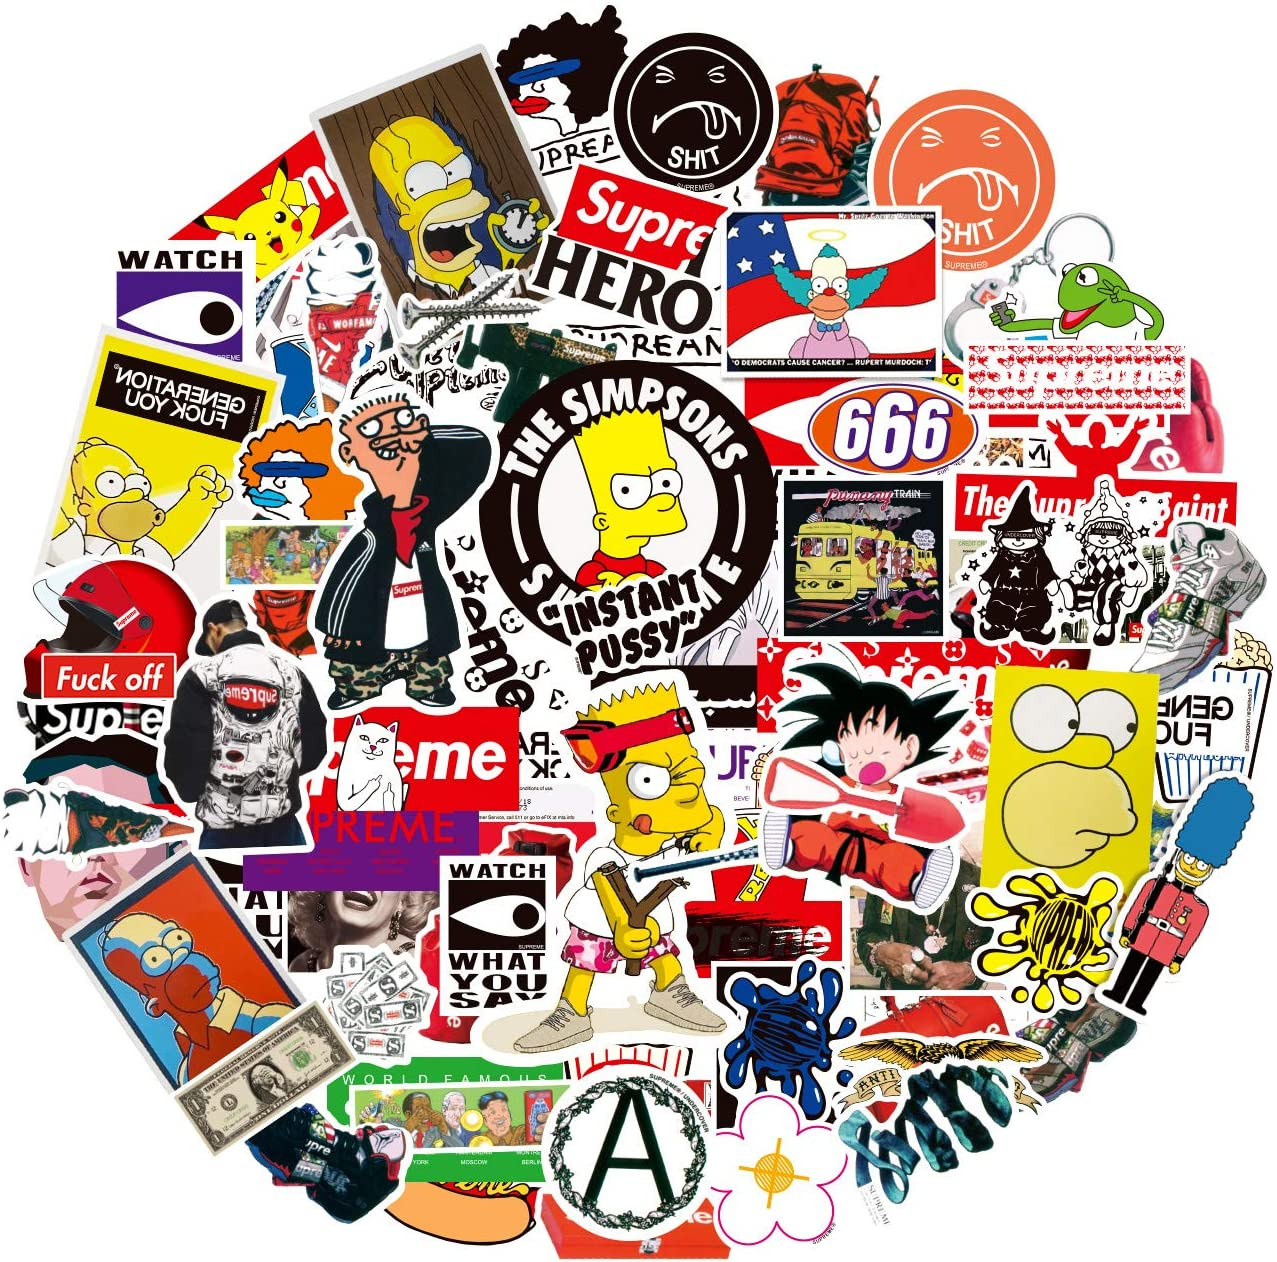 Pauplian 100PCS The Simpsons Stickers Supreme Sticker Cool Vinyl Sticker Packs Sticker Decals Waterproof Stickers for Hydro Flask Laptop Car